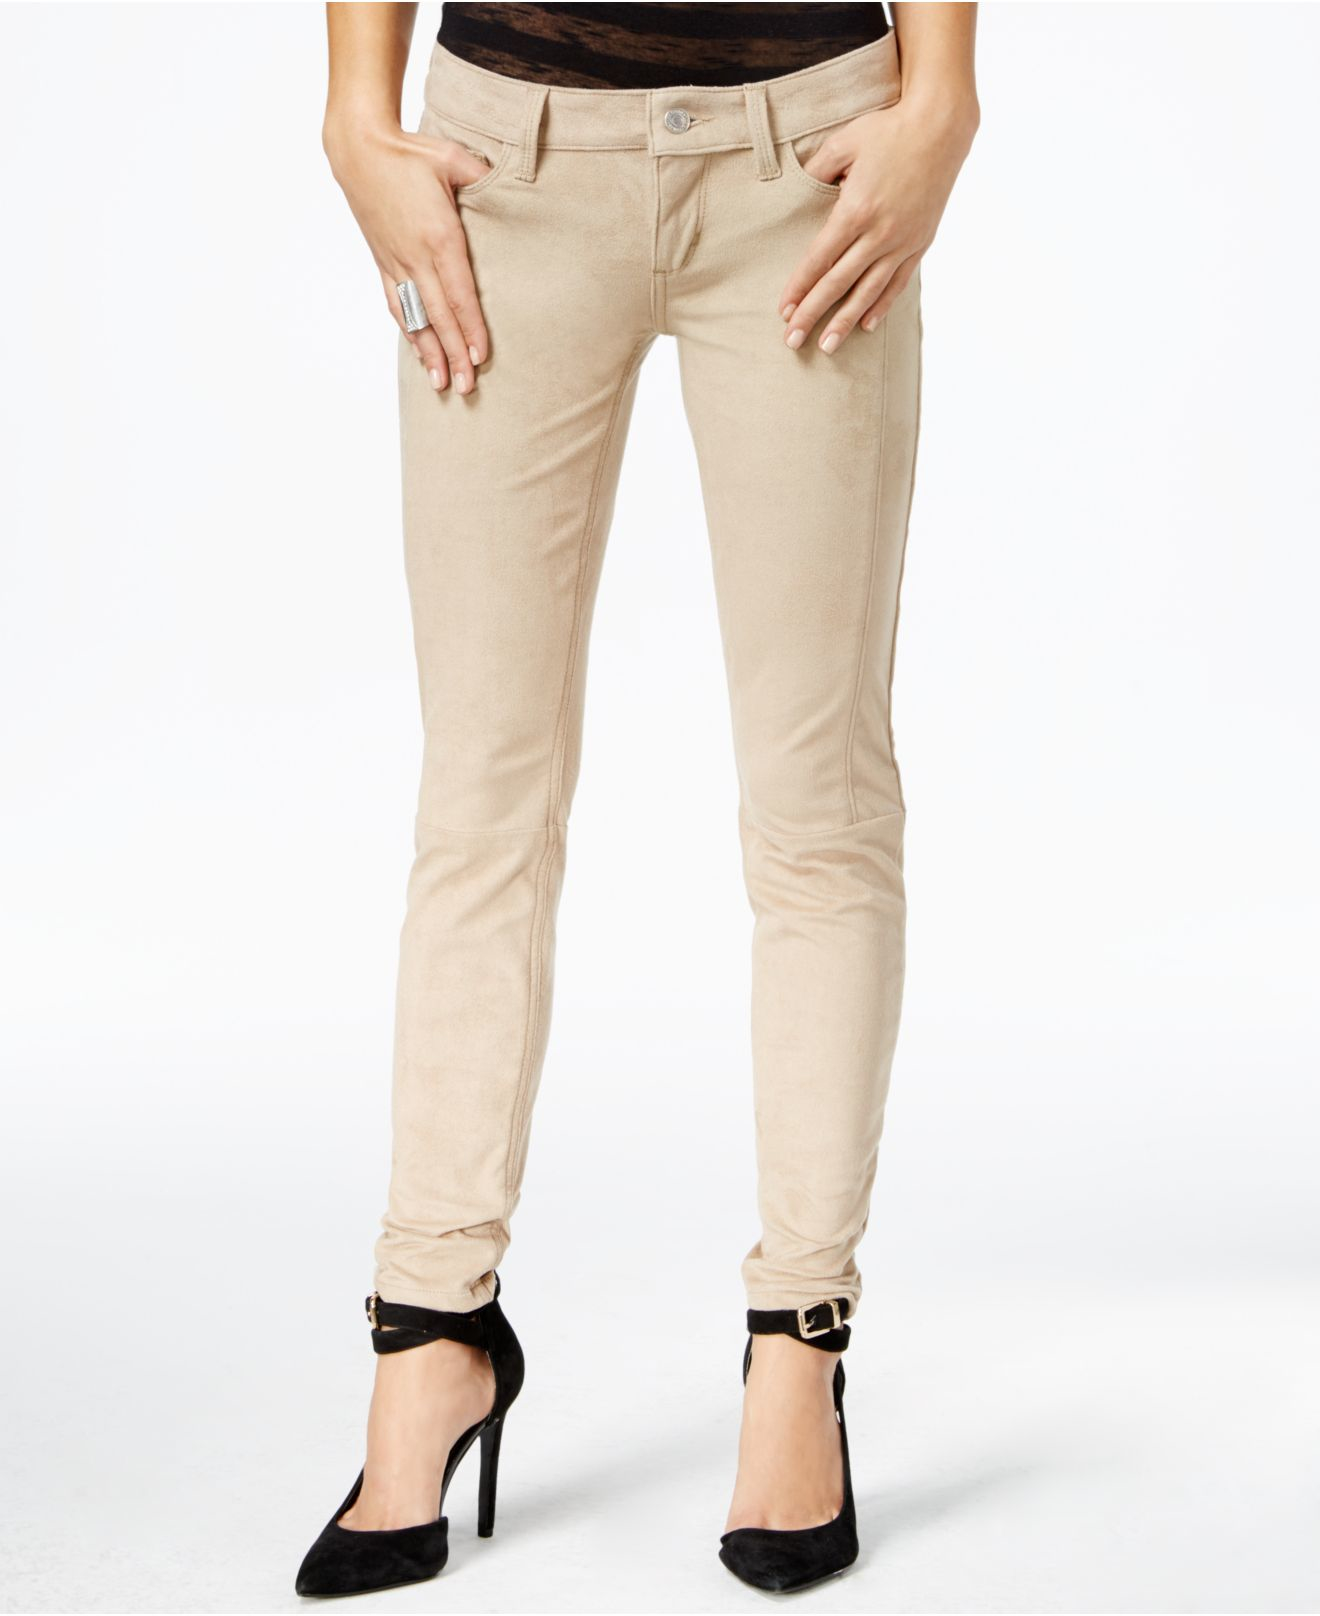 What stores sell tan skinny jeans | Global fashion jeans collection